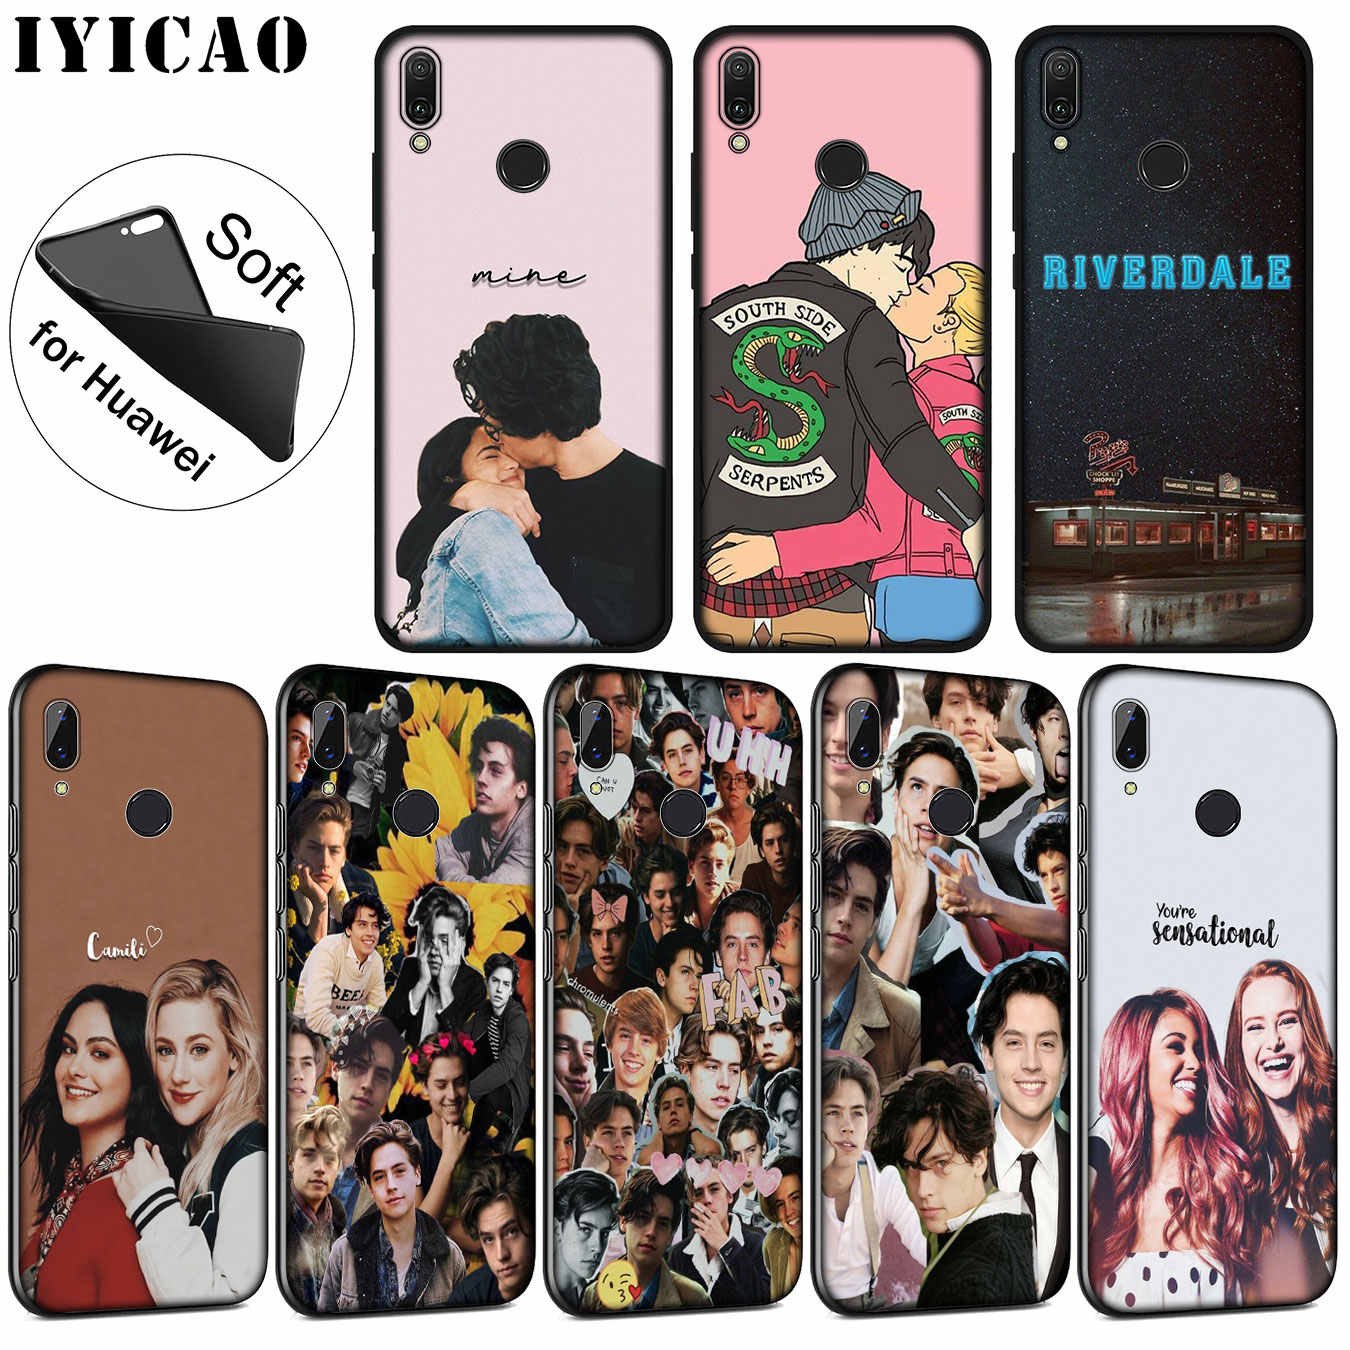 IYICAO riverdale choni Soft Silicone Phone Case for Huawei P30 P20 Pro P10 P9 P8 Lite Mini 2017 2016 2015 P Smart 2019 Cover